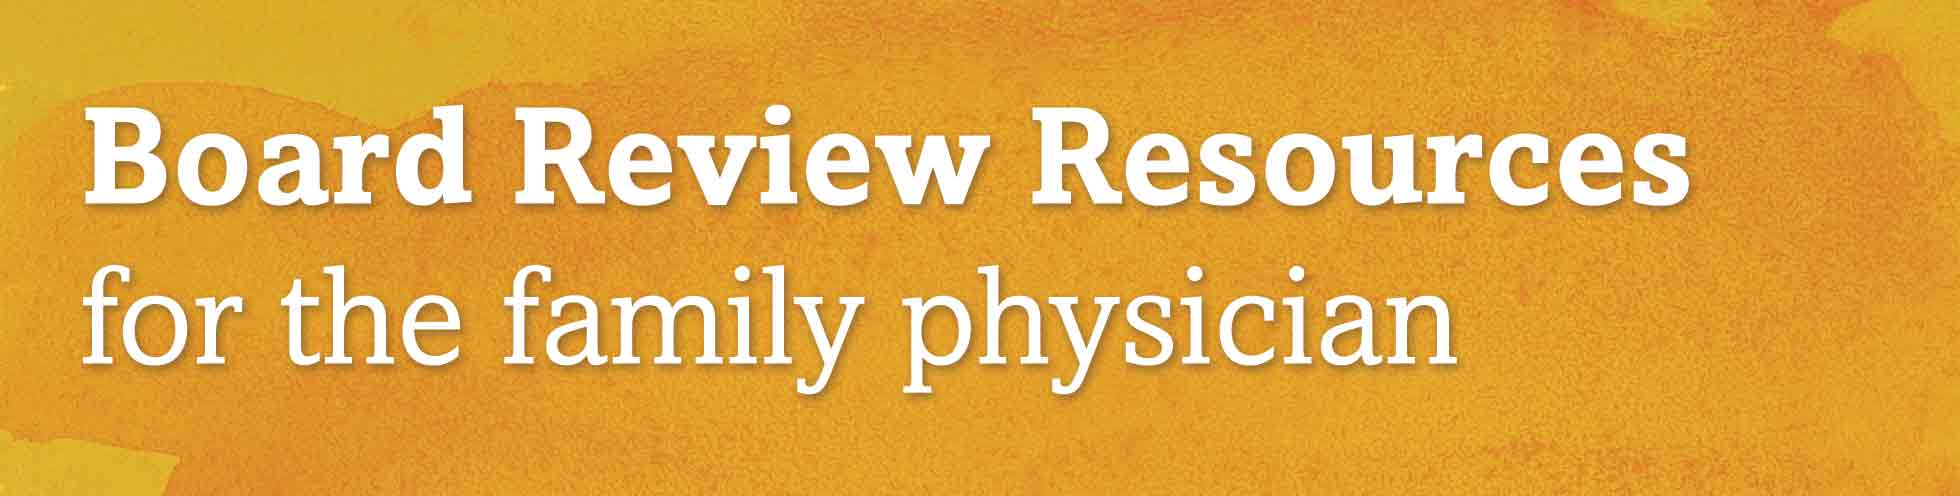 Board Review Resources for the family physician